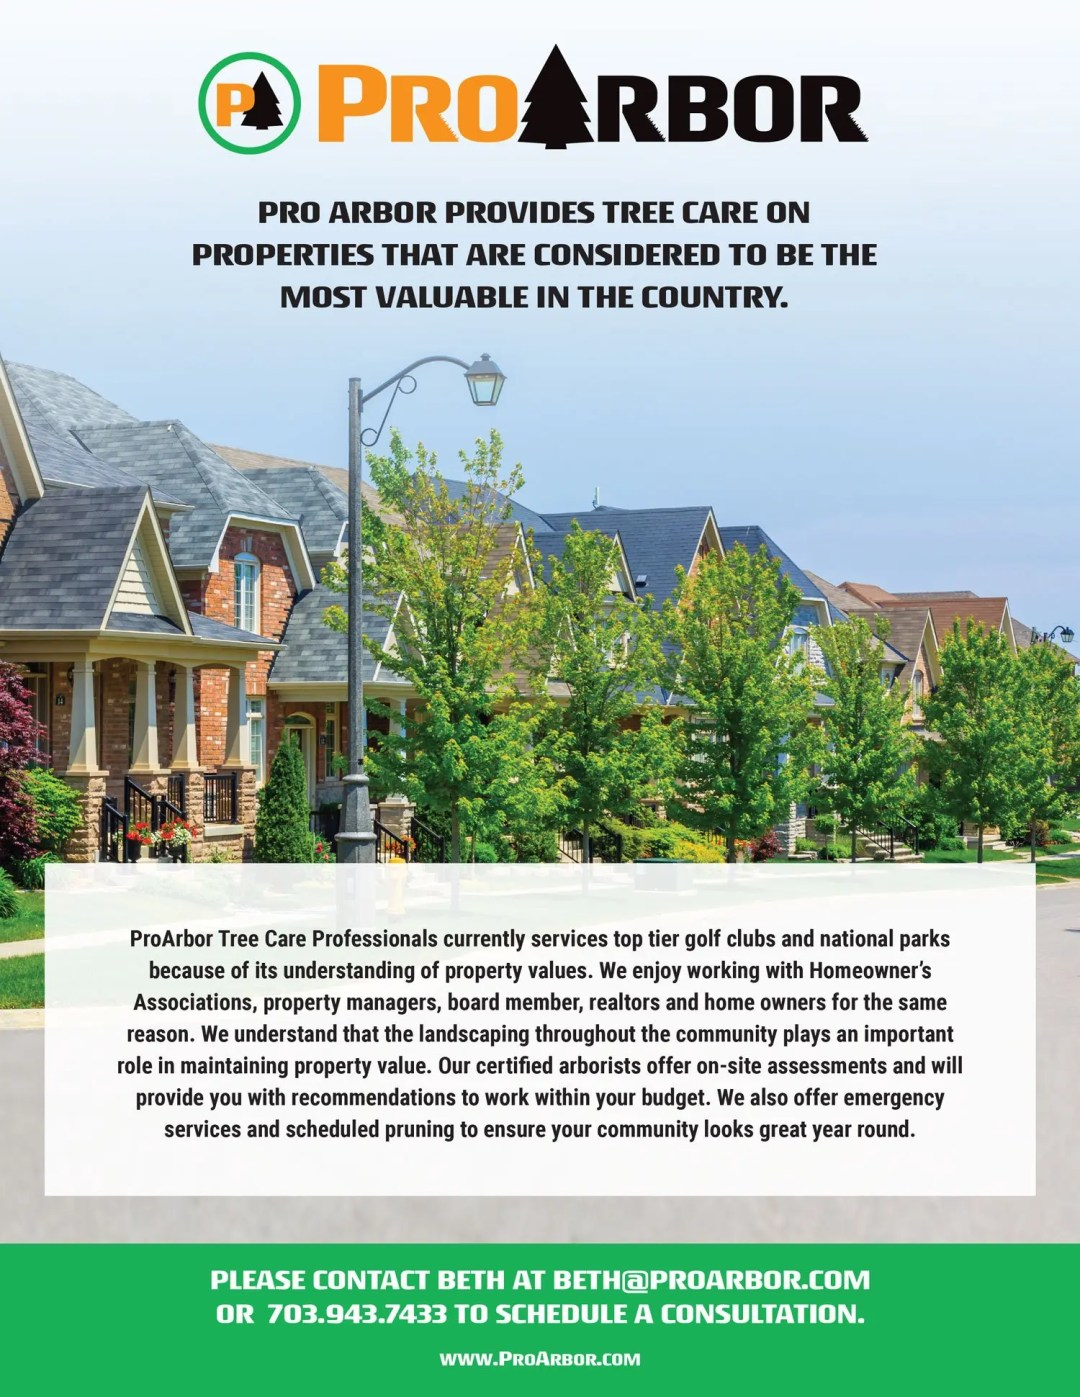 ProArbor HOA RGB - Community Associations/Property Managers/Realtors